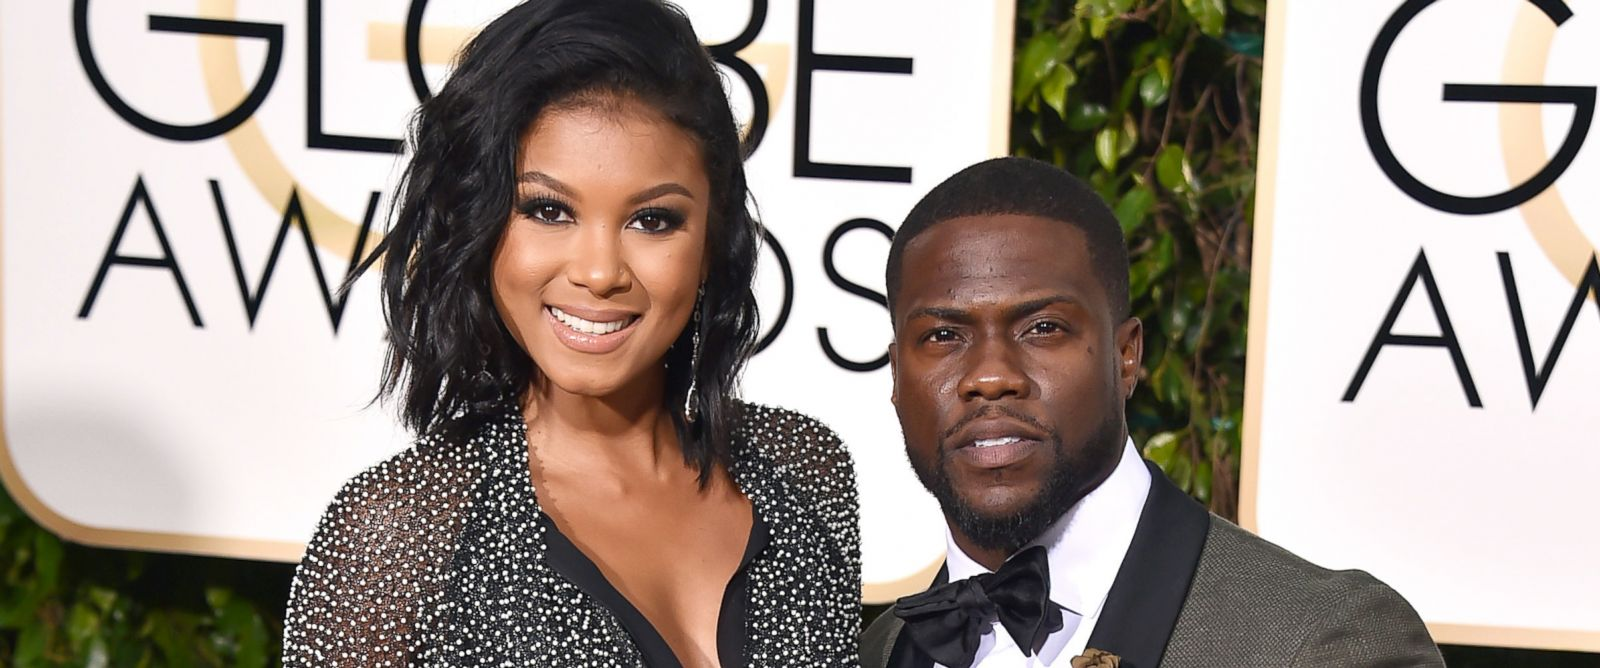 The elegant model Eniko Parrish with her husband Kevin Hart the highest paid comedian in the world